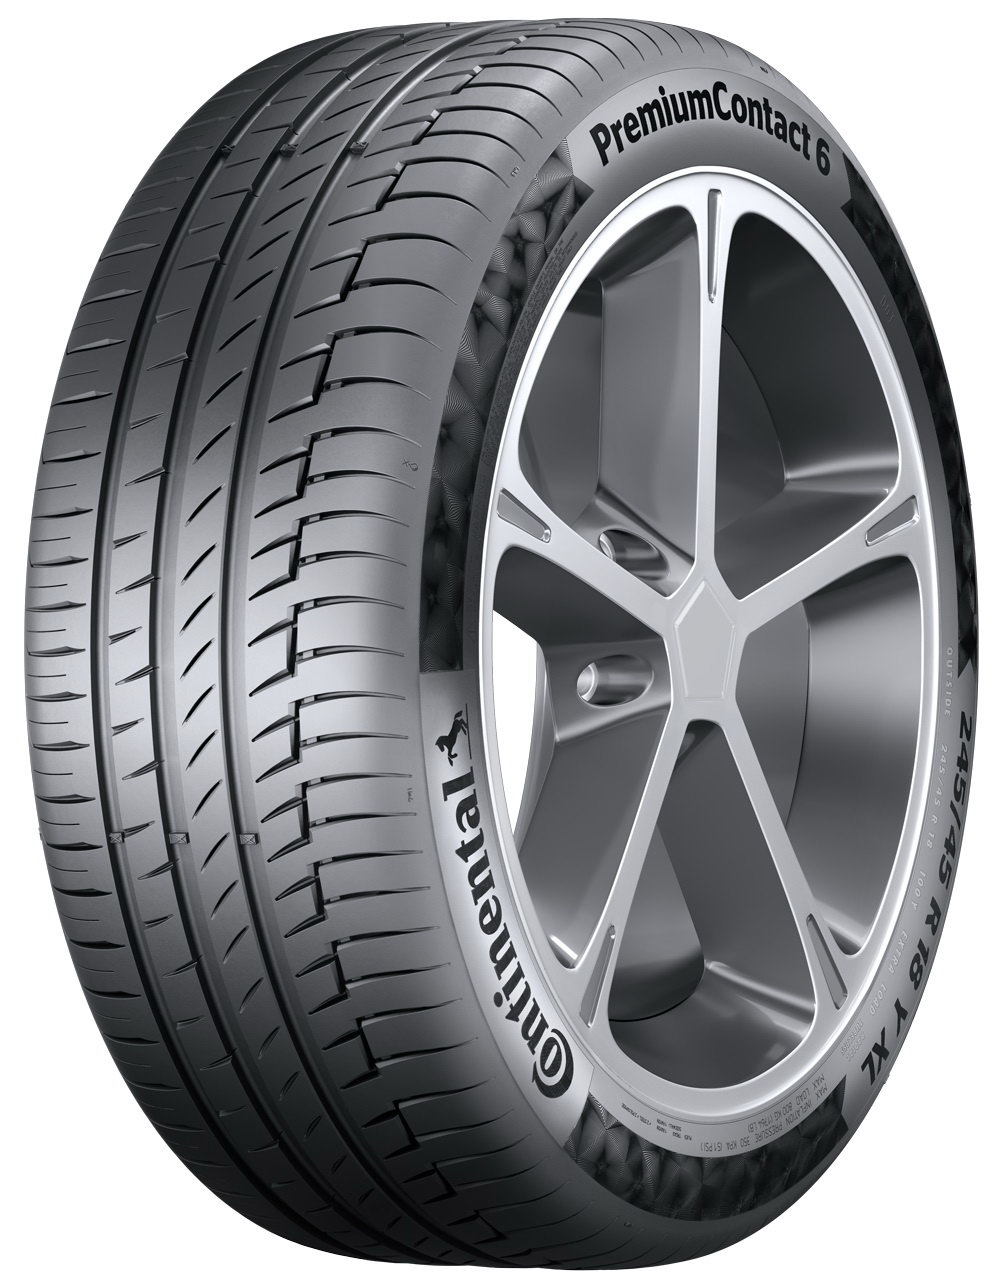 Anvelope vara CONTINENTAL PREMIUM CONTACT 6 195/65 R15 91H